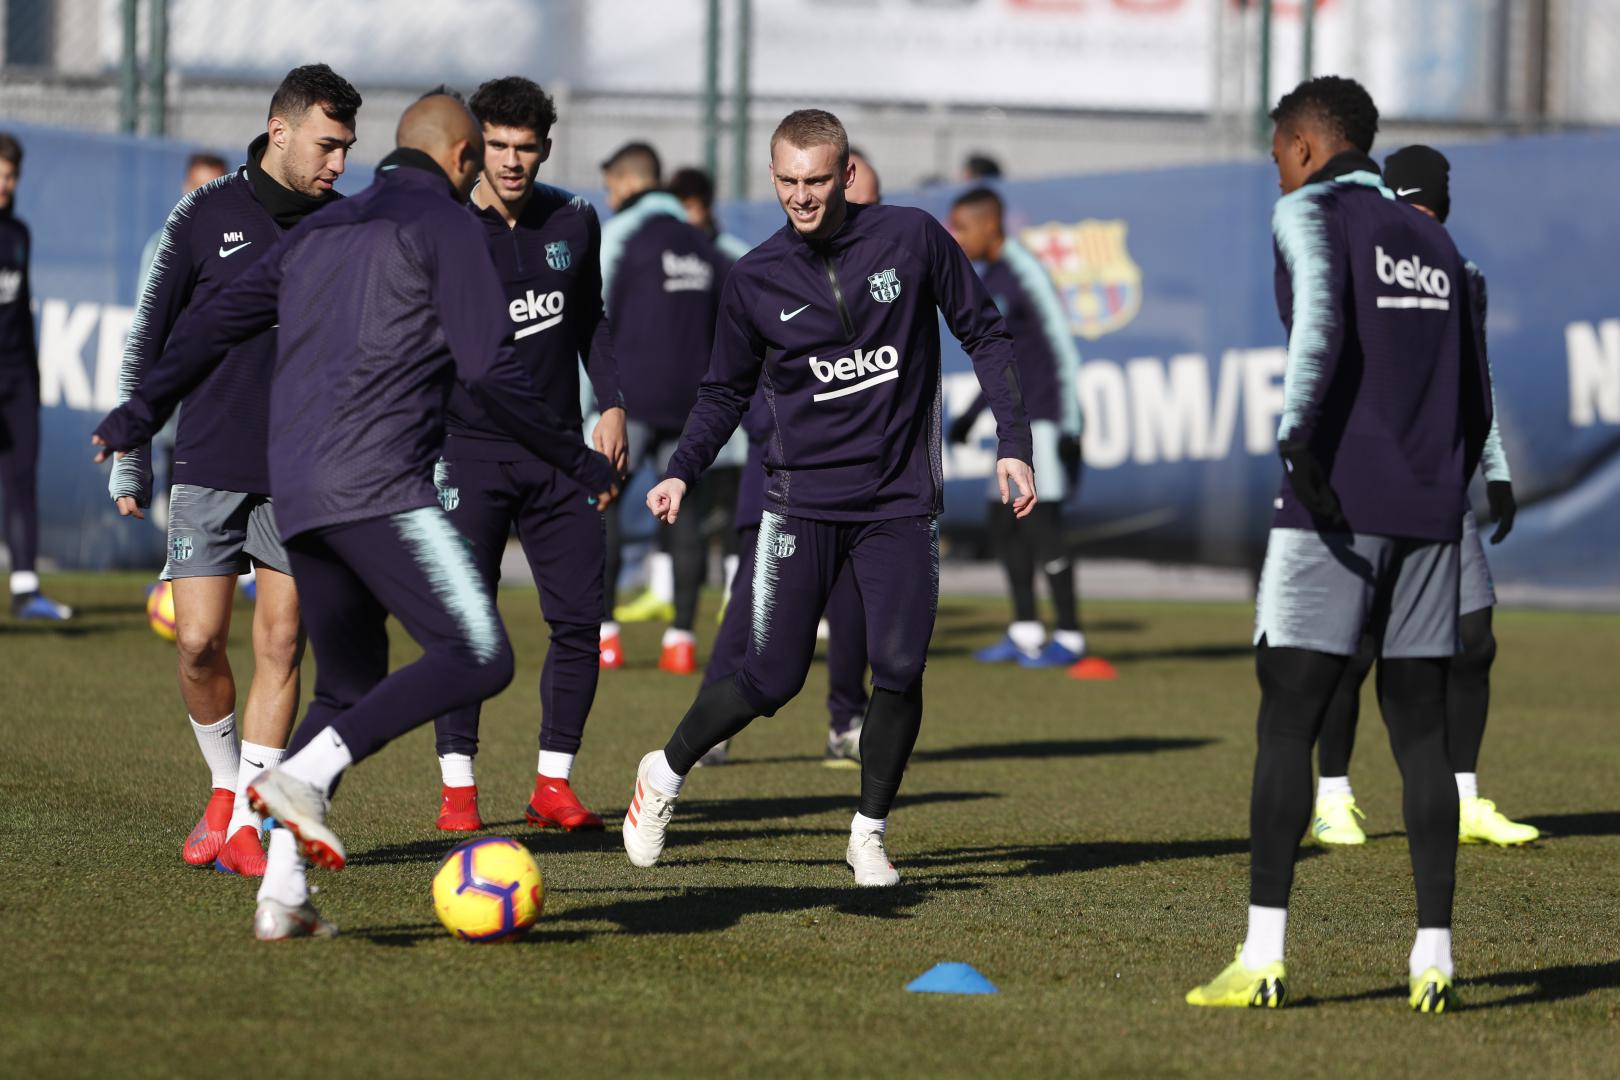 ��⚽ Getting down to business! ���� #ForçaBarça https://t.co/uwrp9xl68D